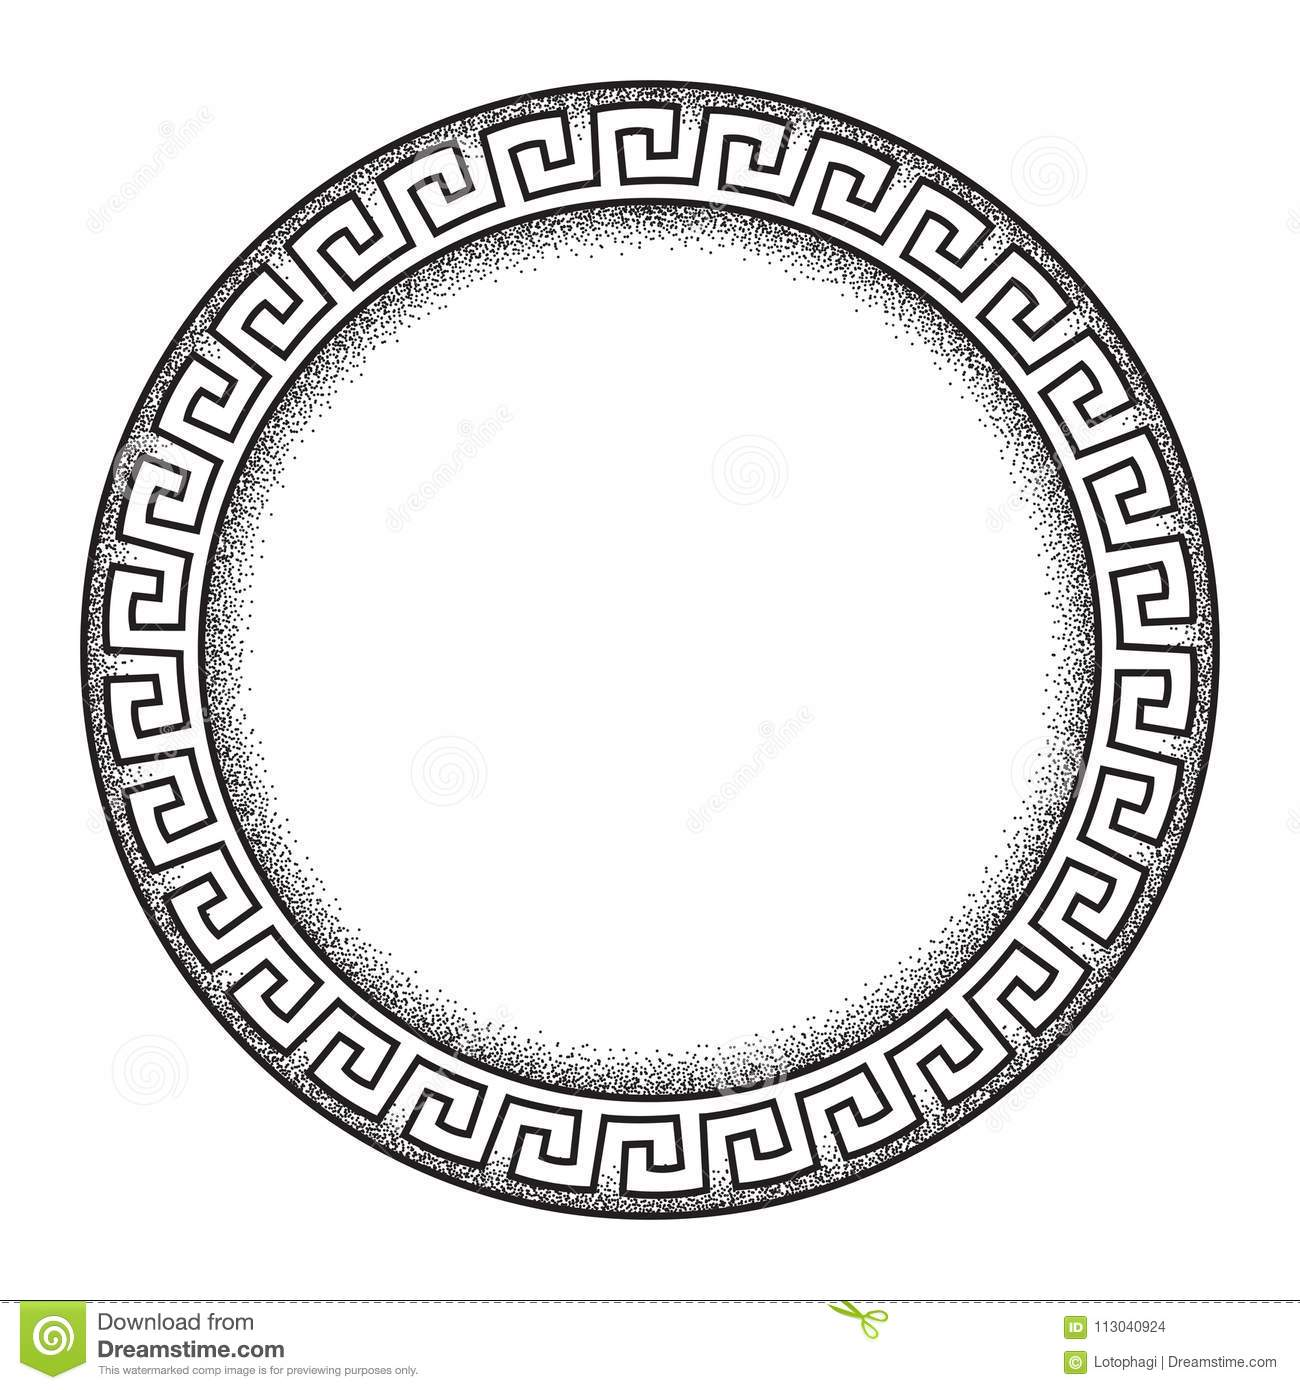 Antique greek style meander ornanent hand drawn line art and dot work round frame design vector illustration.